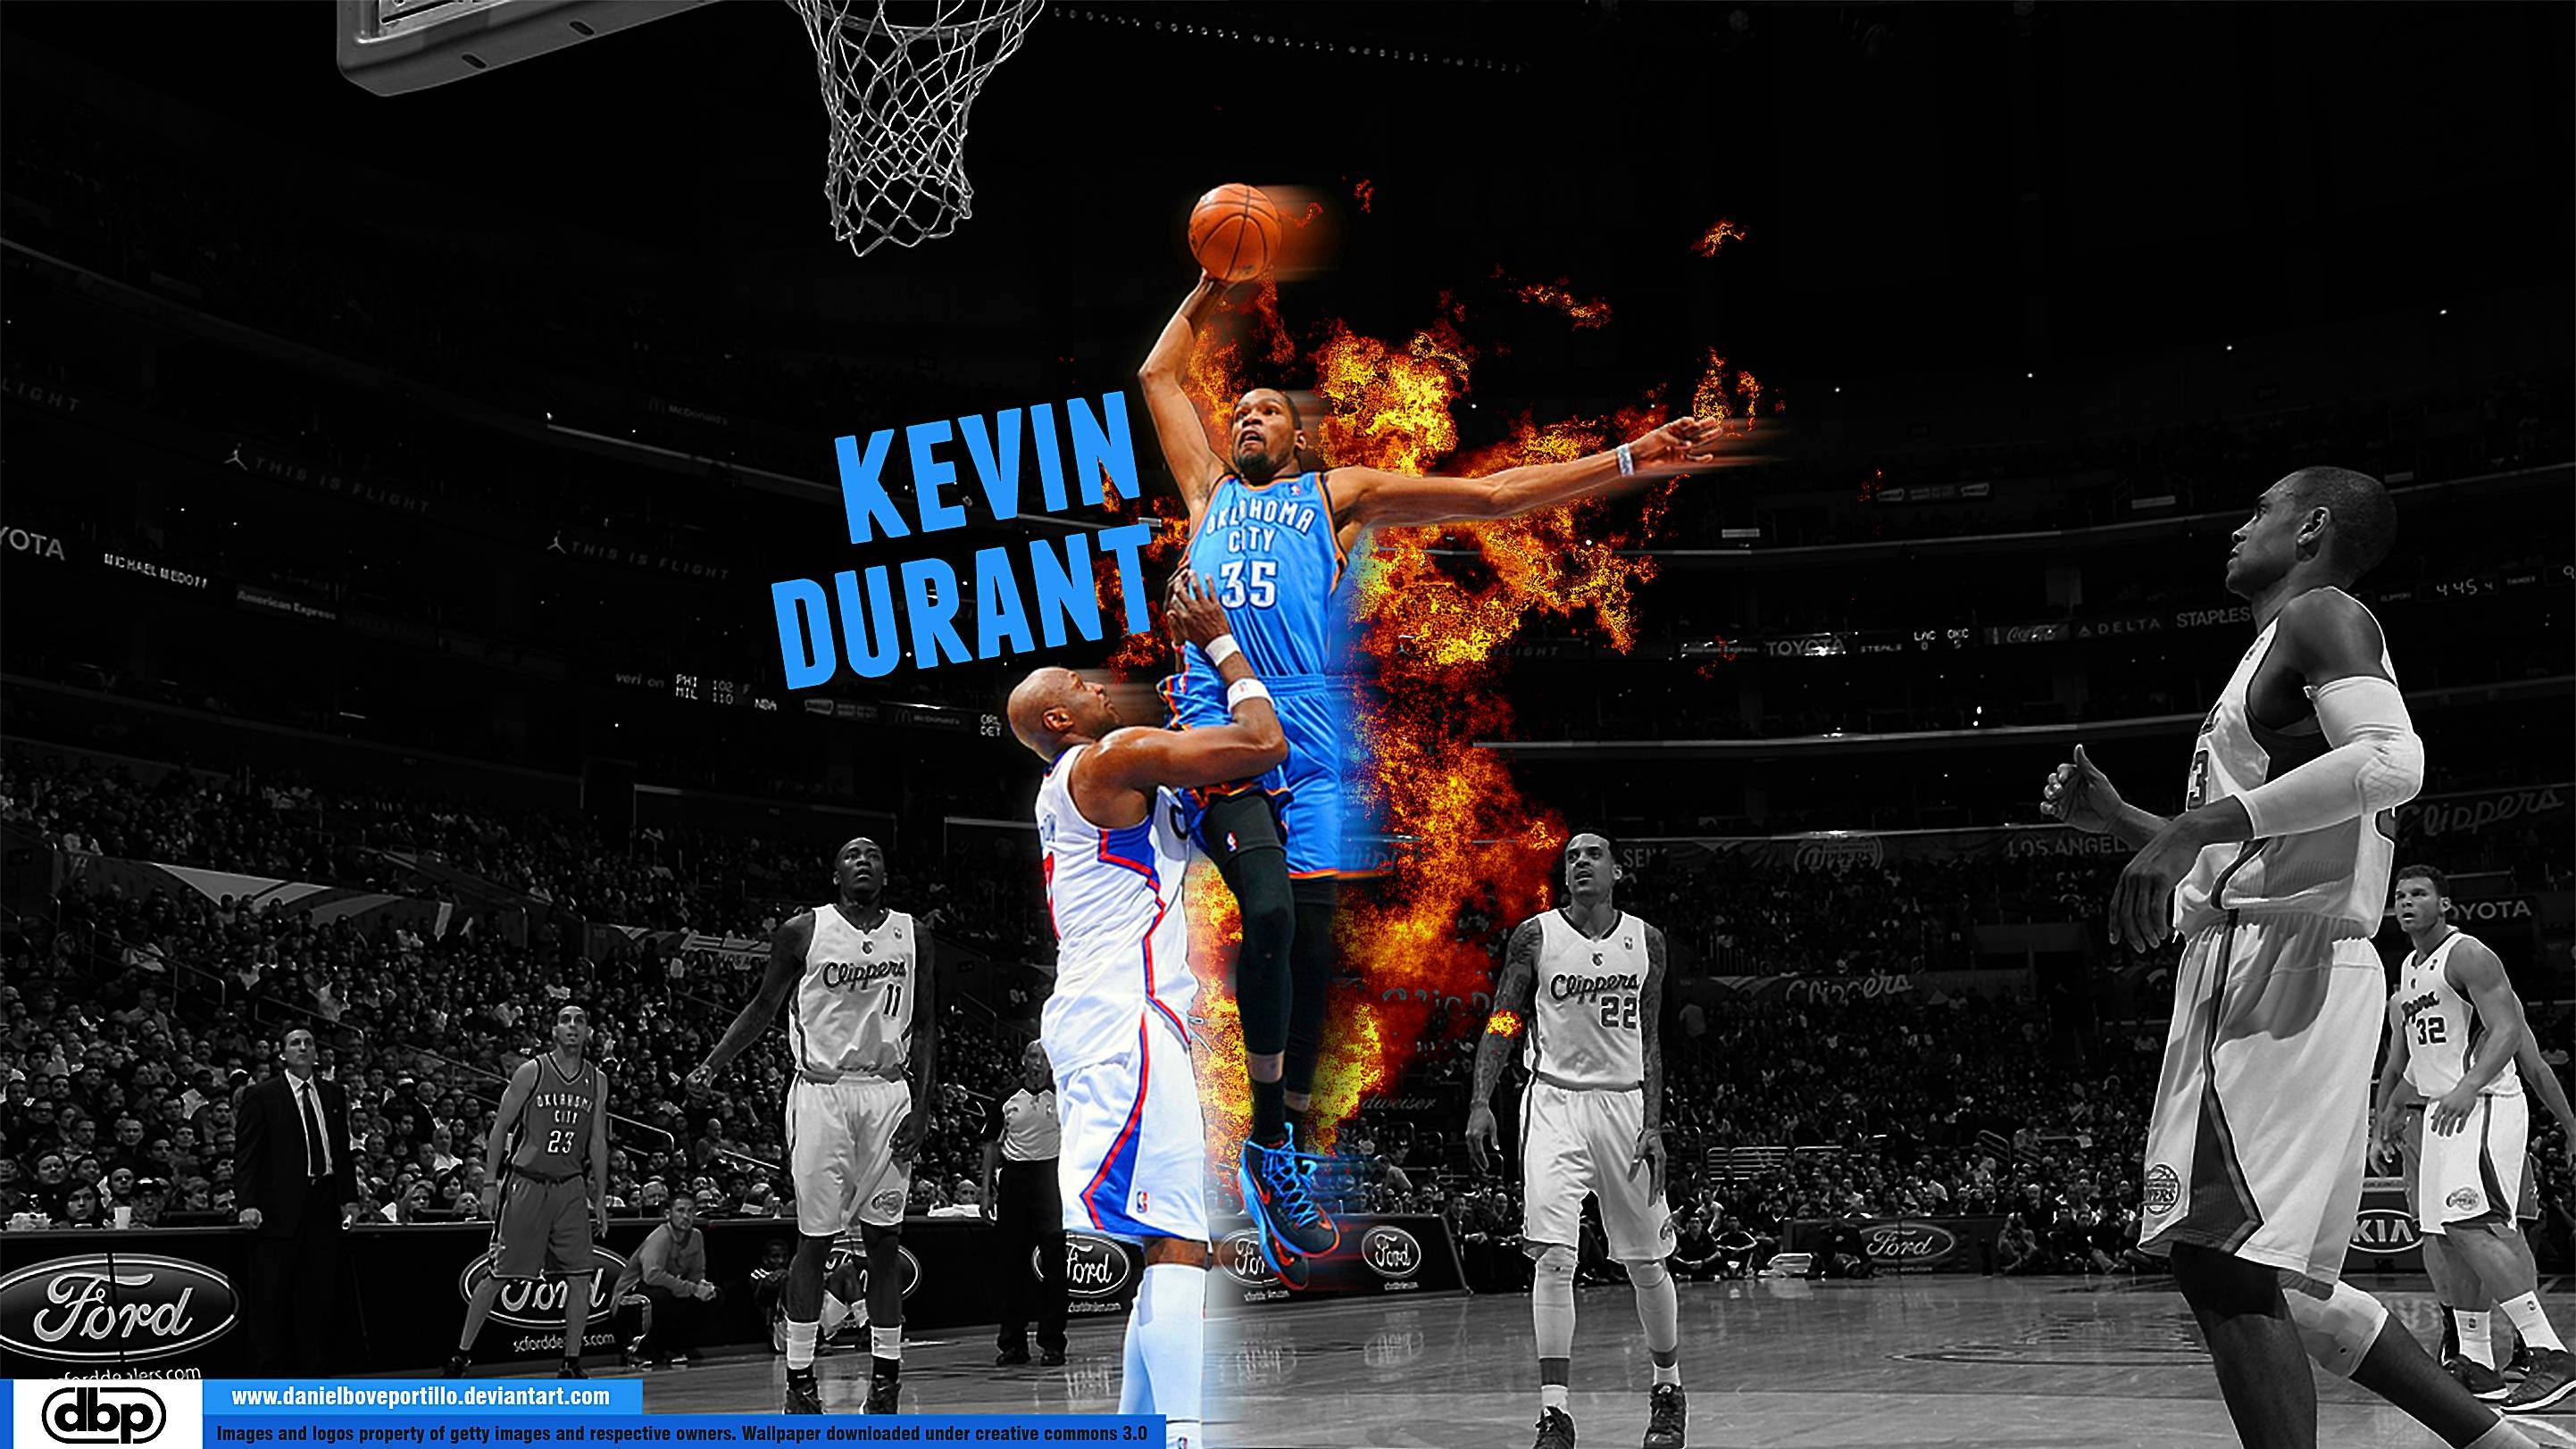 Kevin Durant Dunk Wallpapers 2016 2885x1623